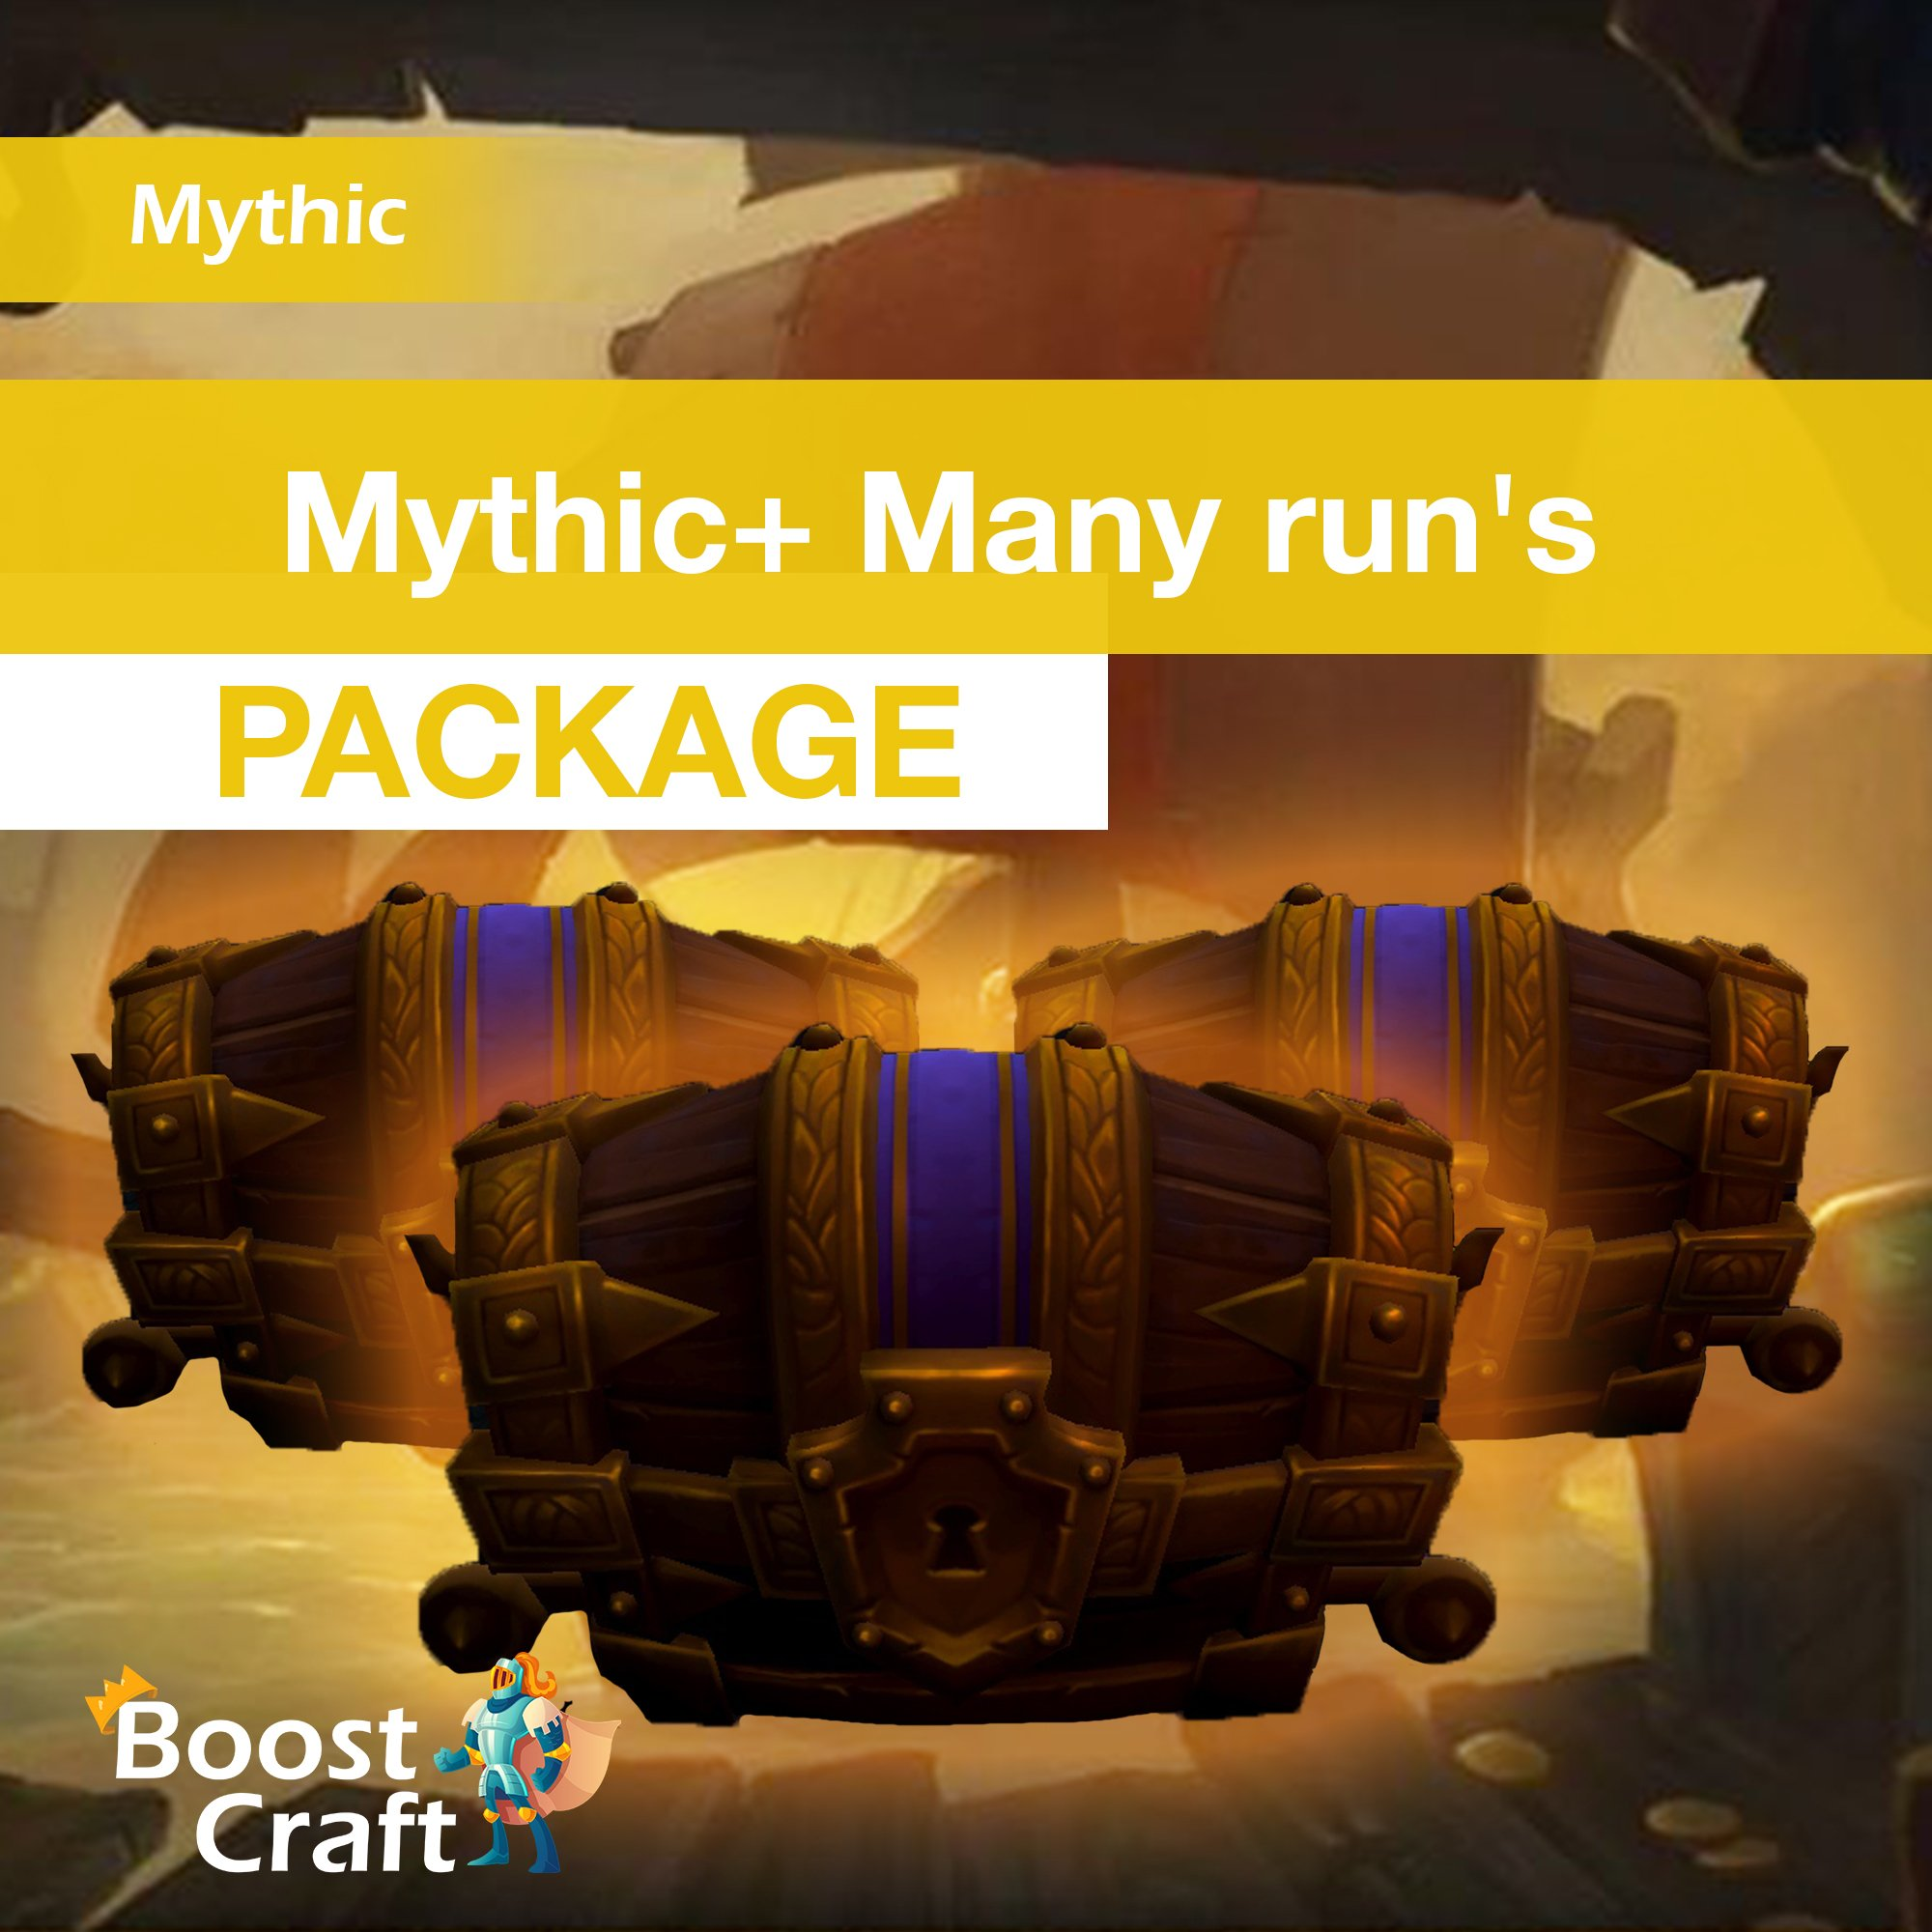 Package of Mythic+ runs, Mythic+ dungeons boost